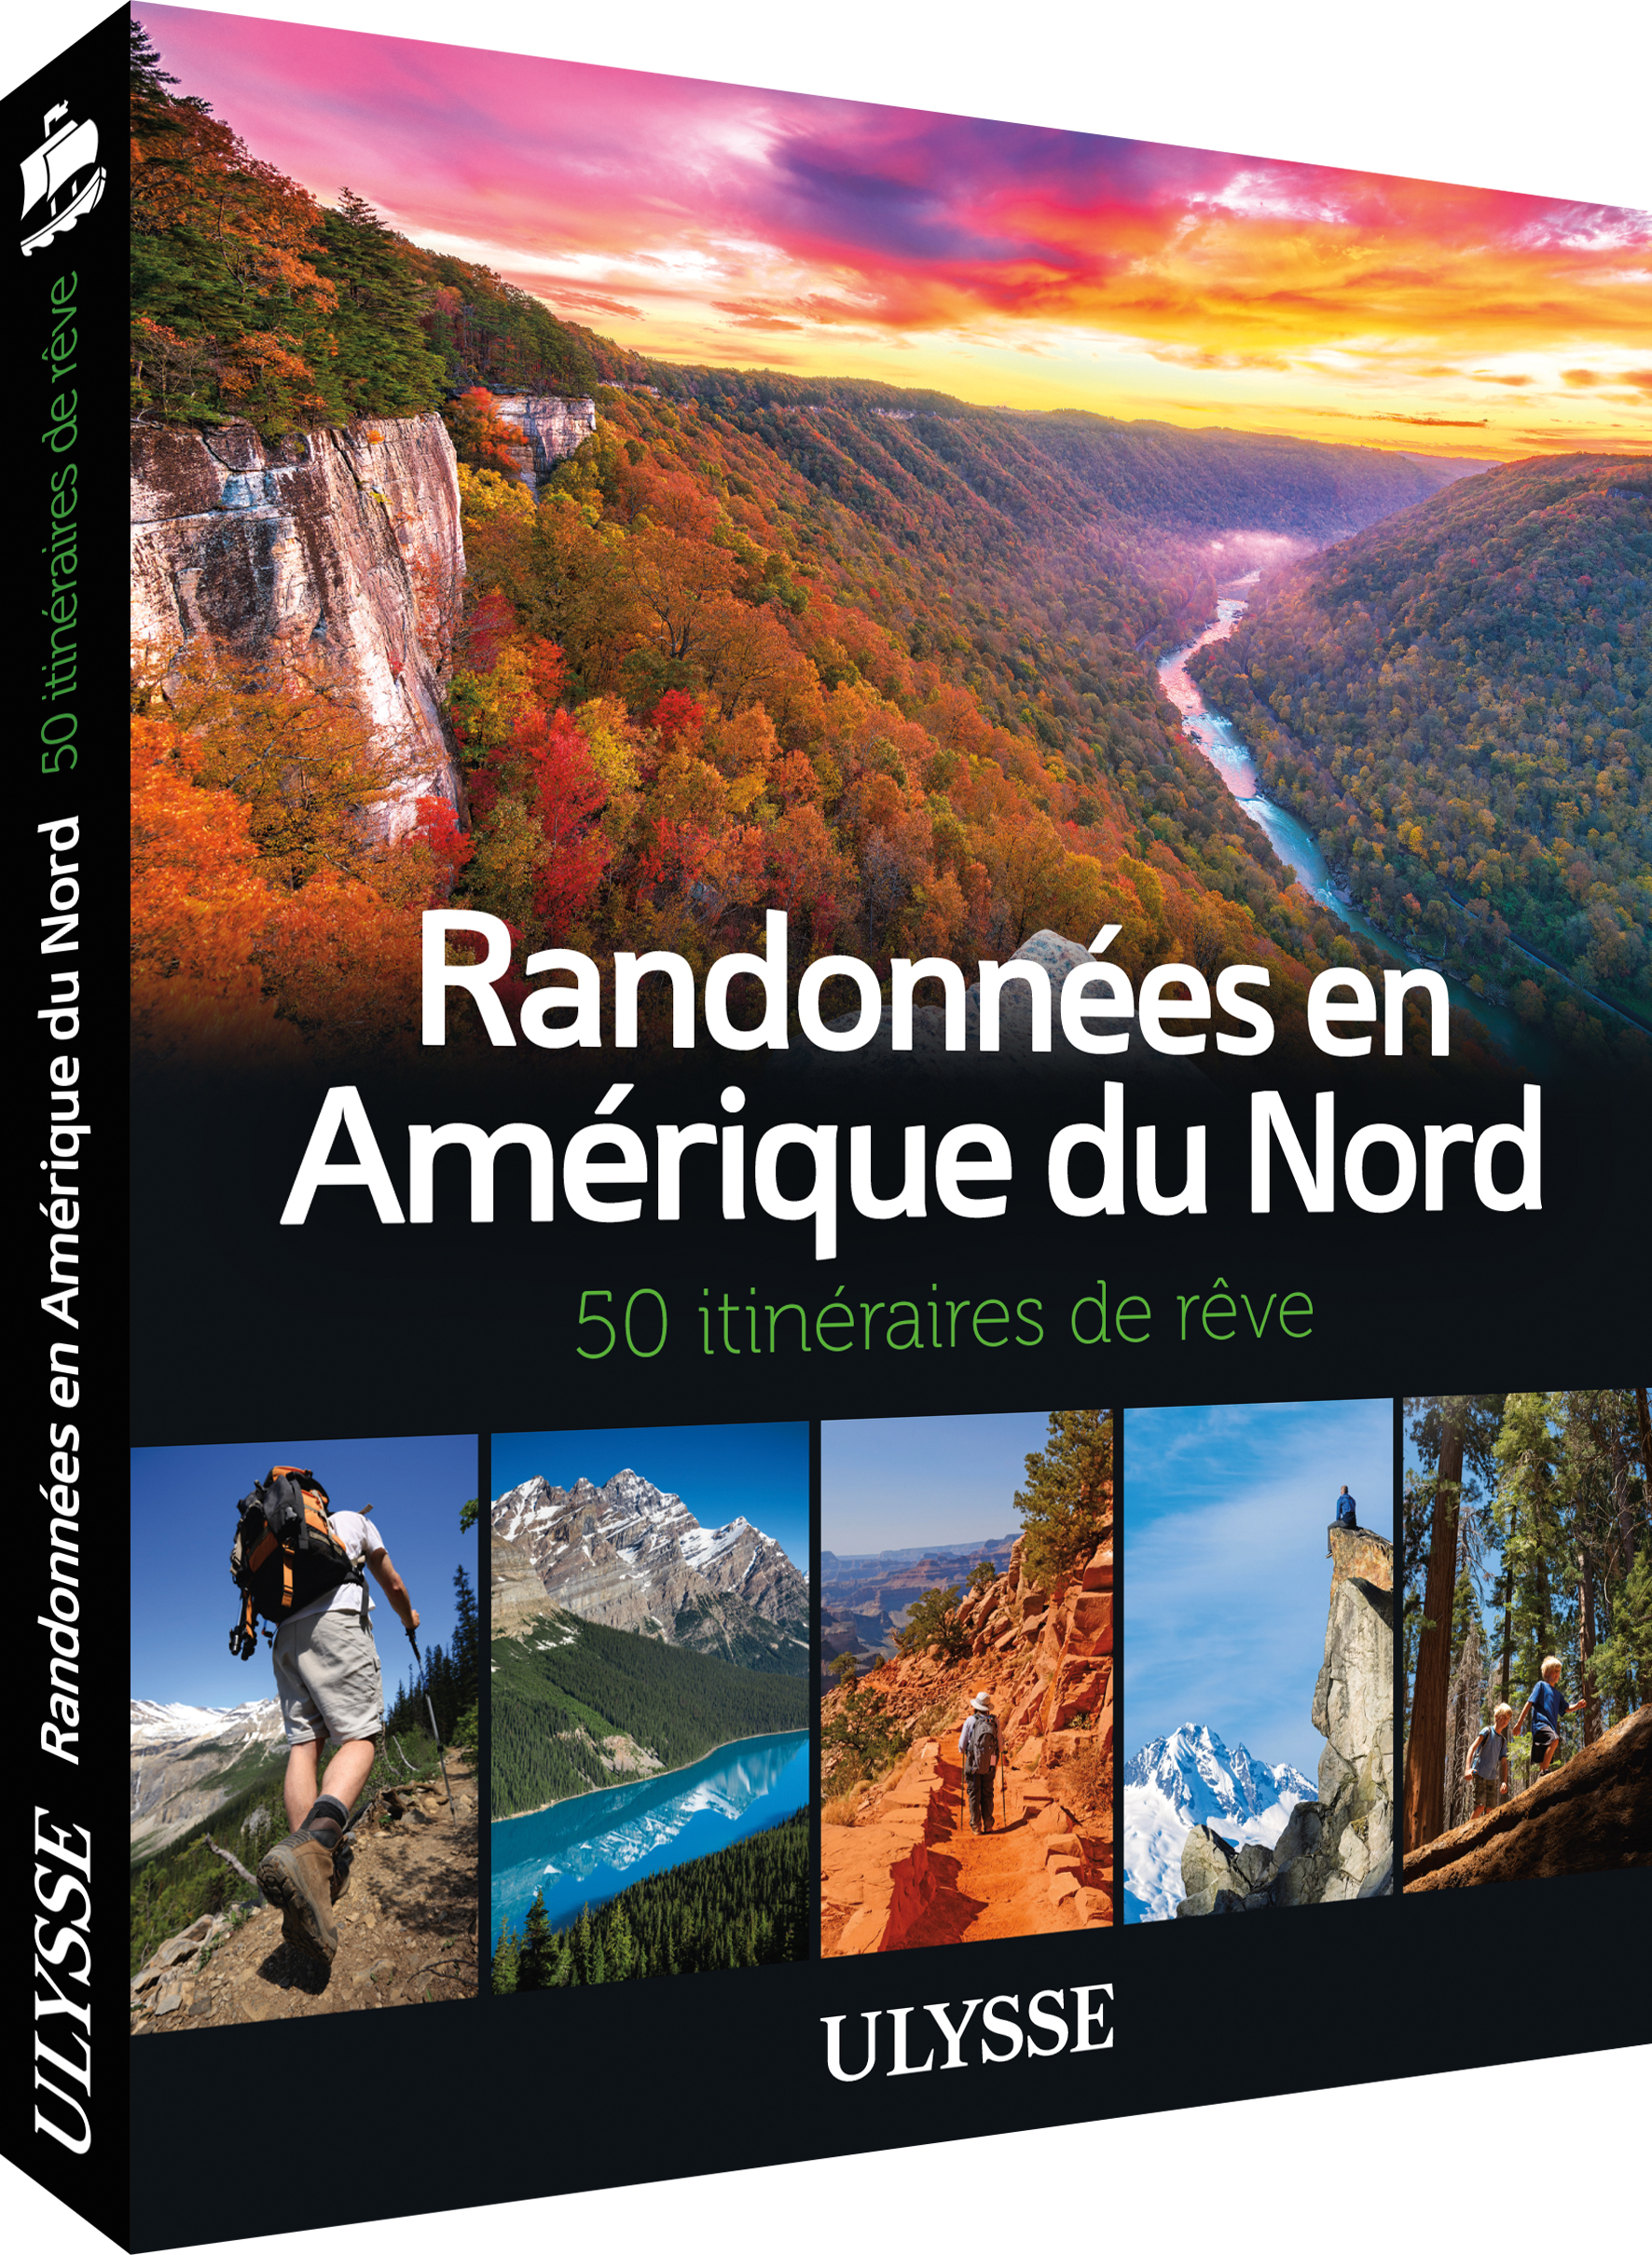 guide randonnees en amerique du nord